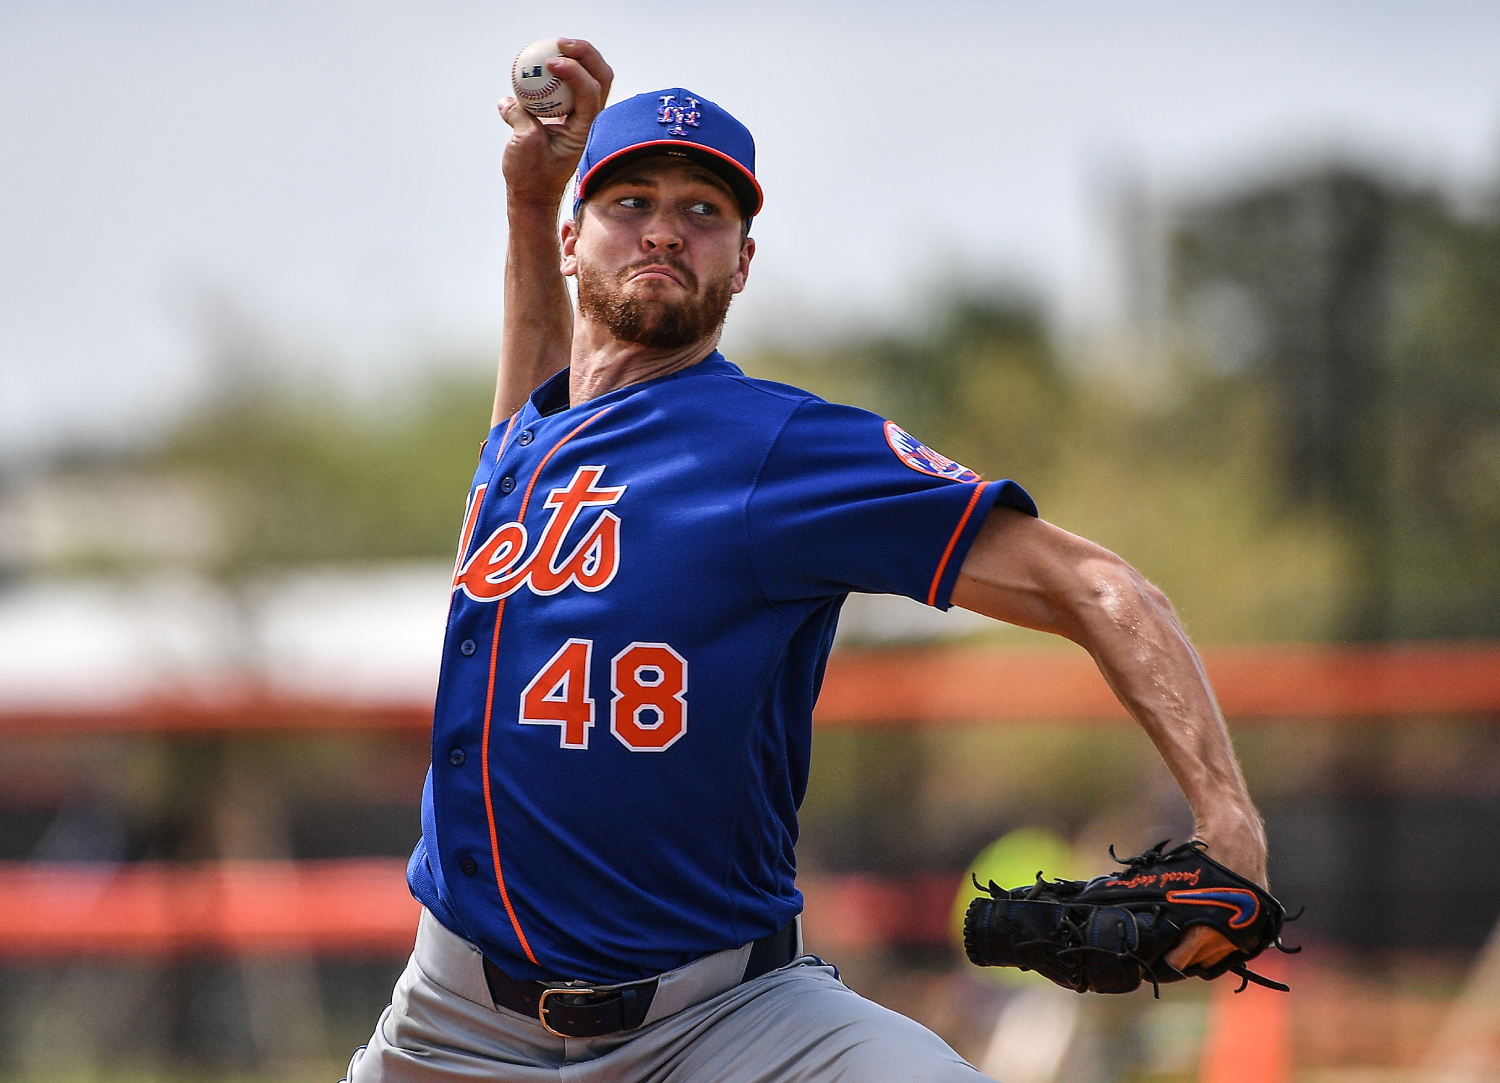 Mets pitcher Jacob deGrom has won two straight NL Cy Young Awards. However, he could lose his crown to a pitcher that has barely been paid.